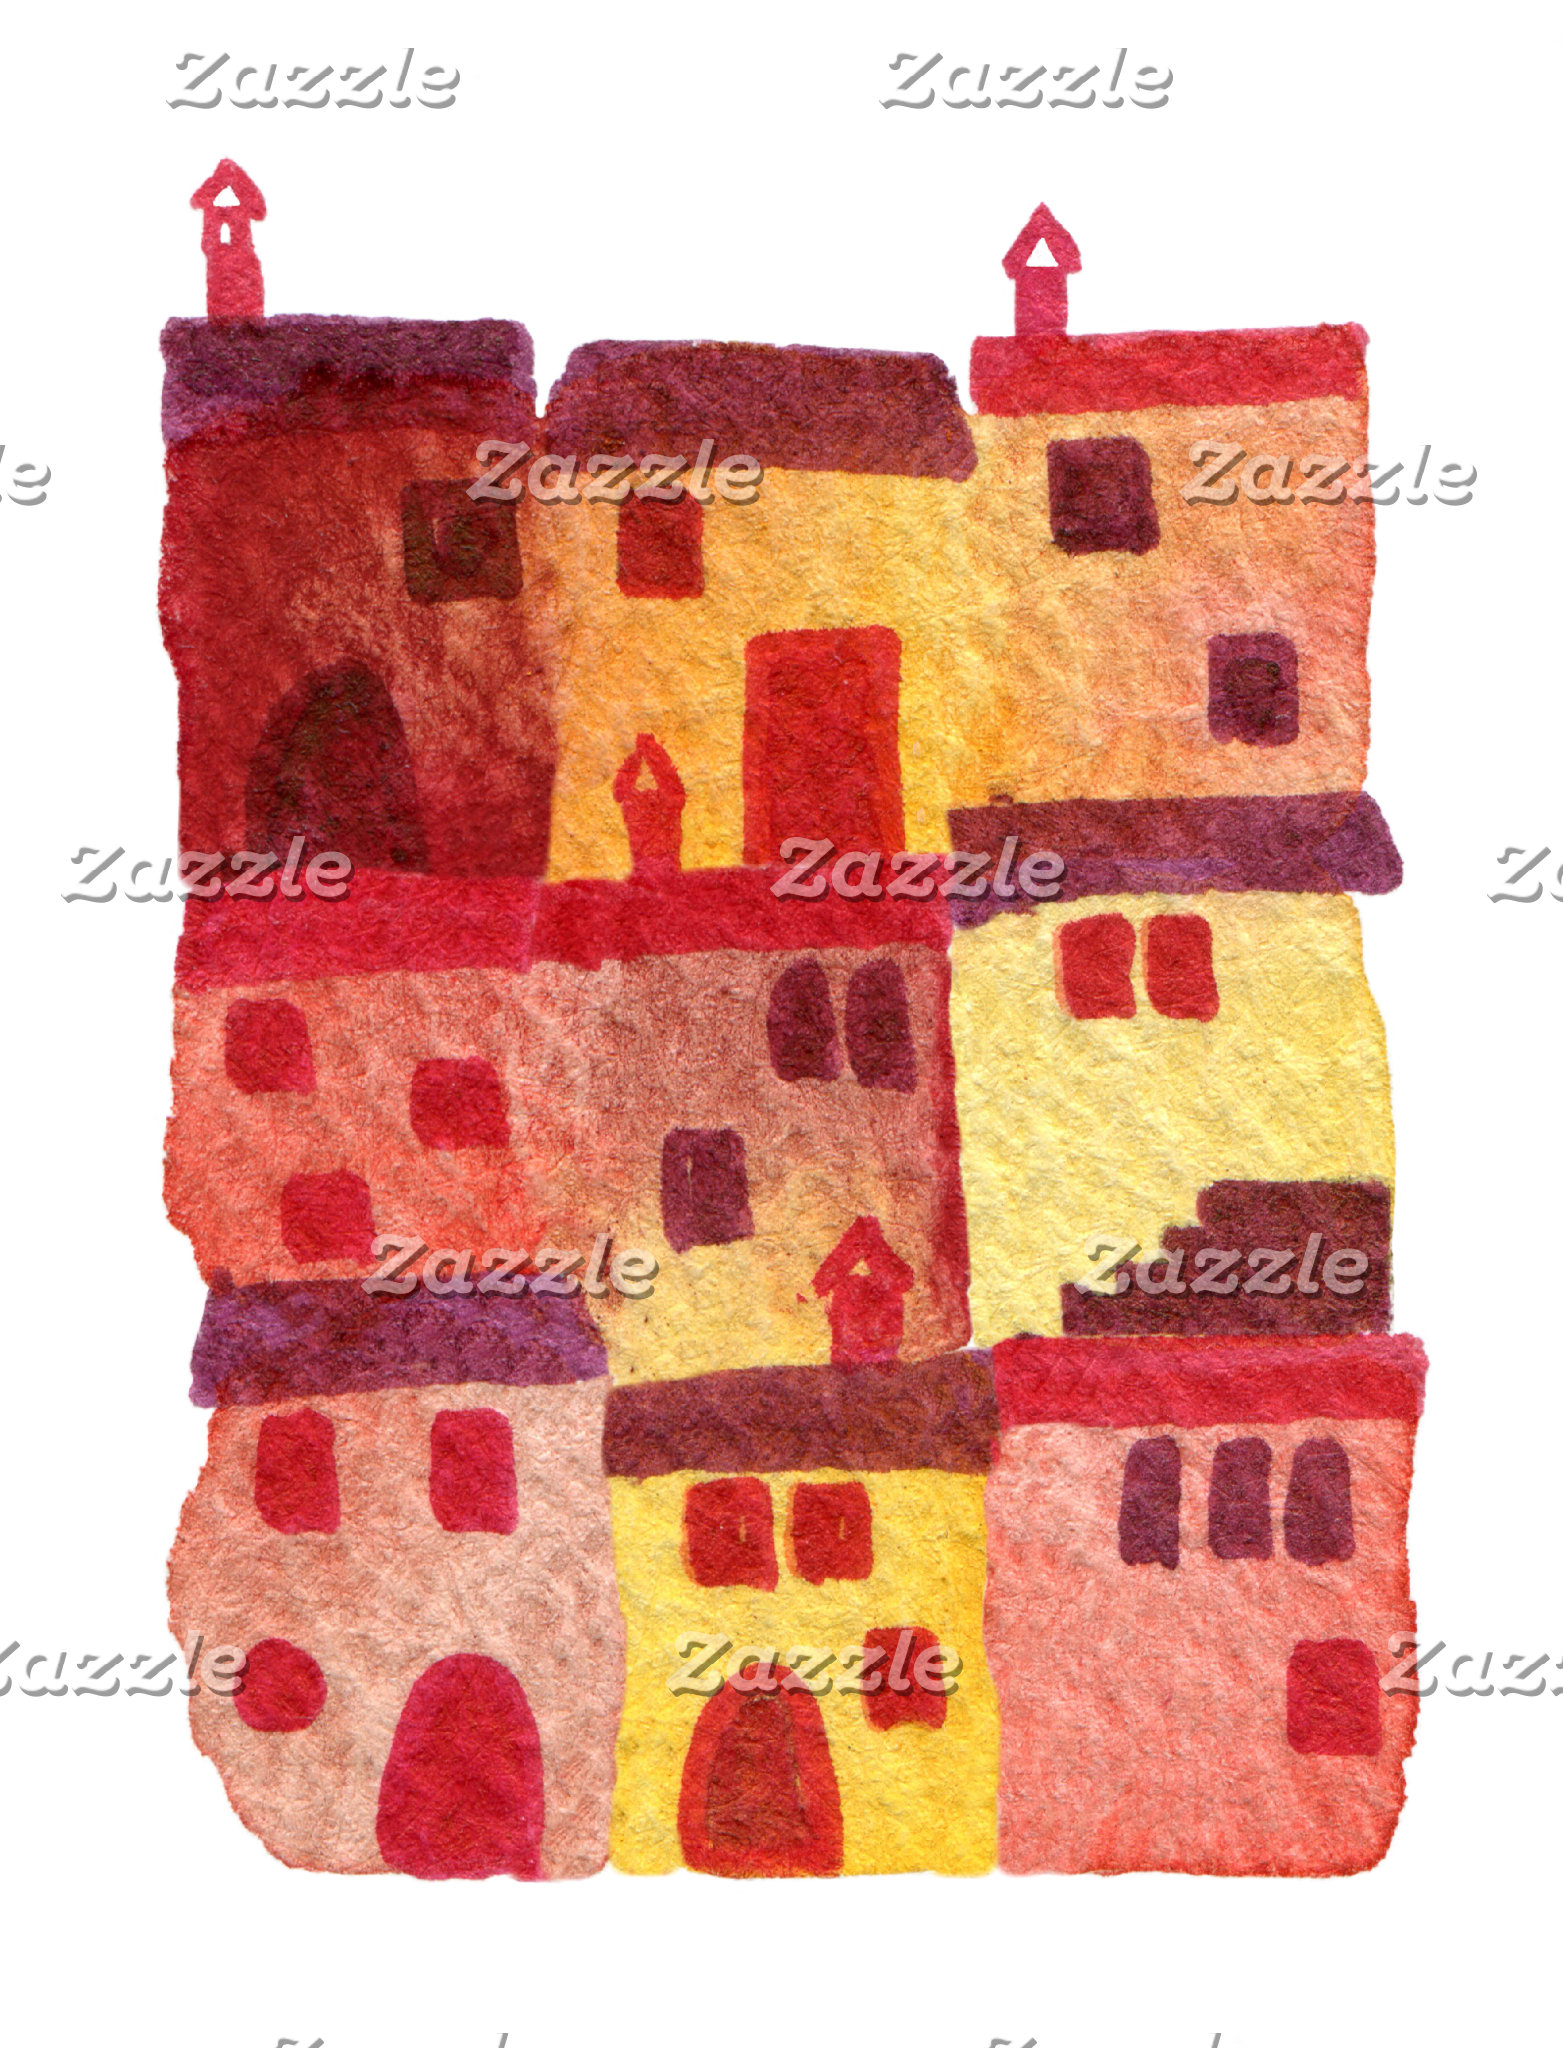 Houses, towns, villages